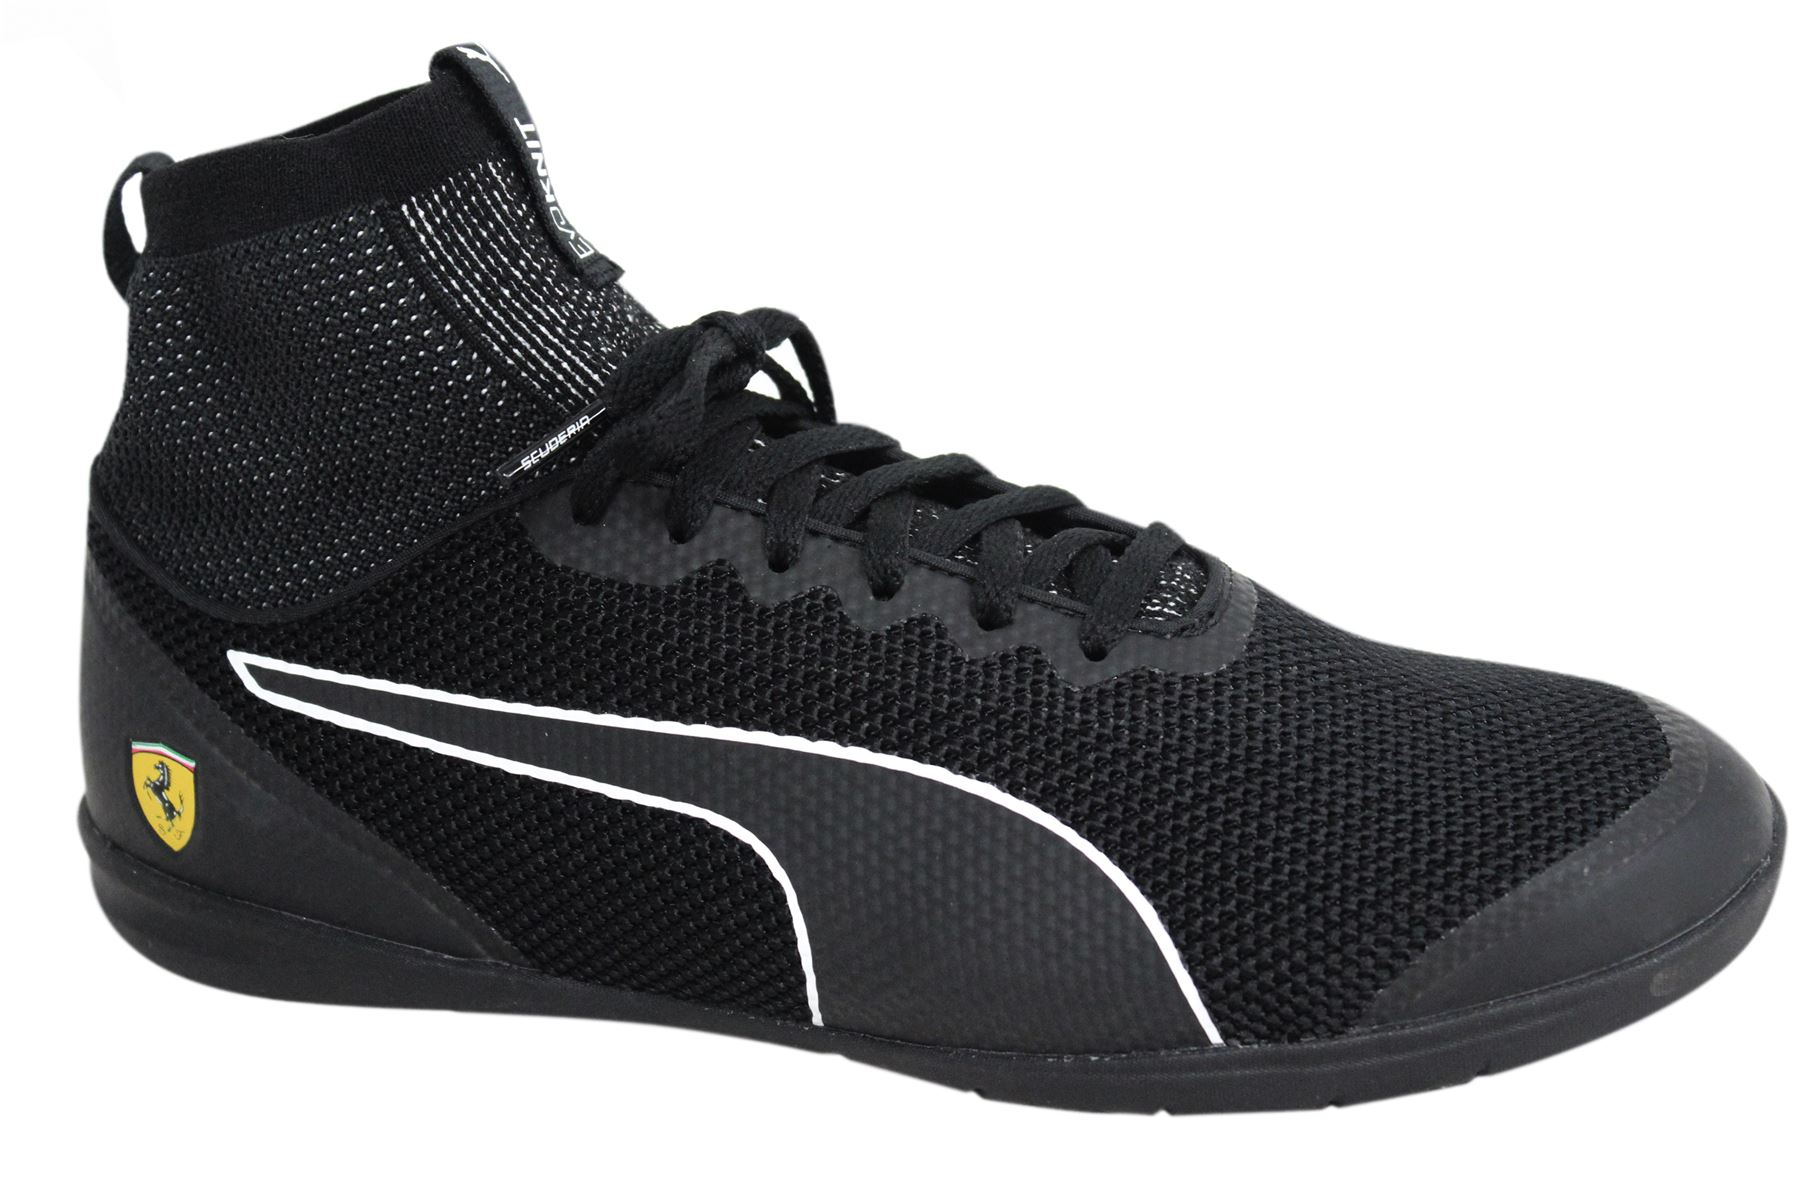 reputable site 2a25d 5fbdc Details about Puma SF Ferrari Changer Ignite evoKNIT Lace Up Black Mens  Trainers 305919 02 M12